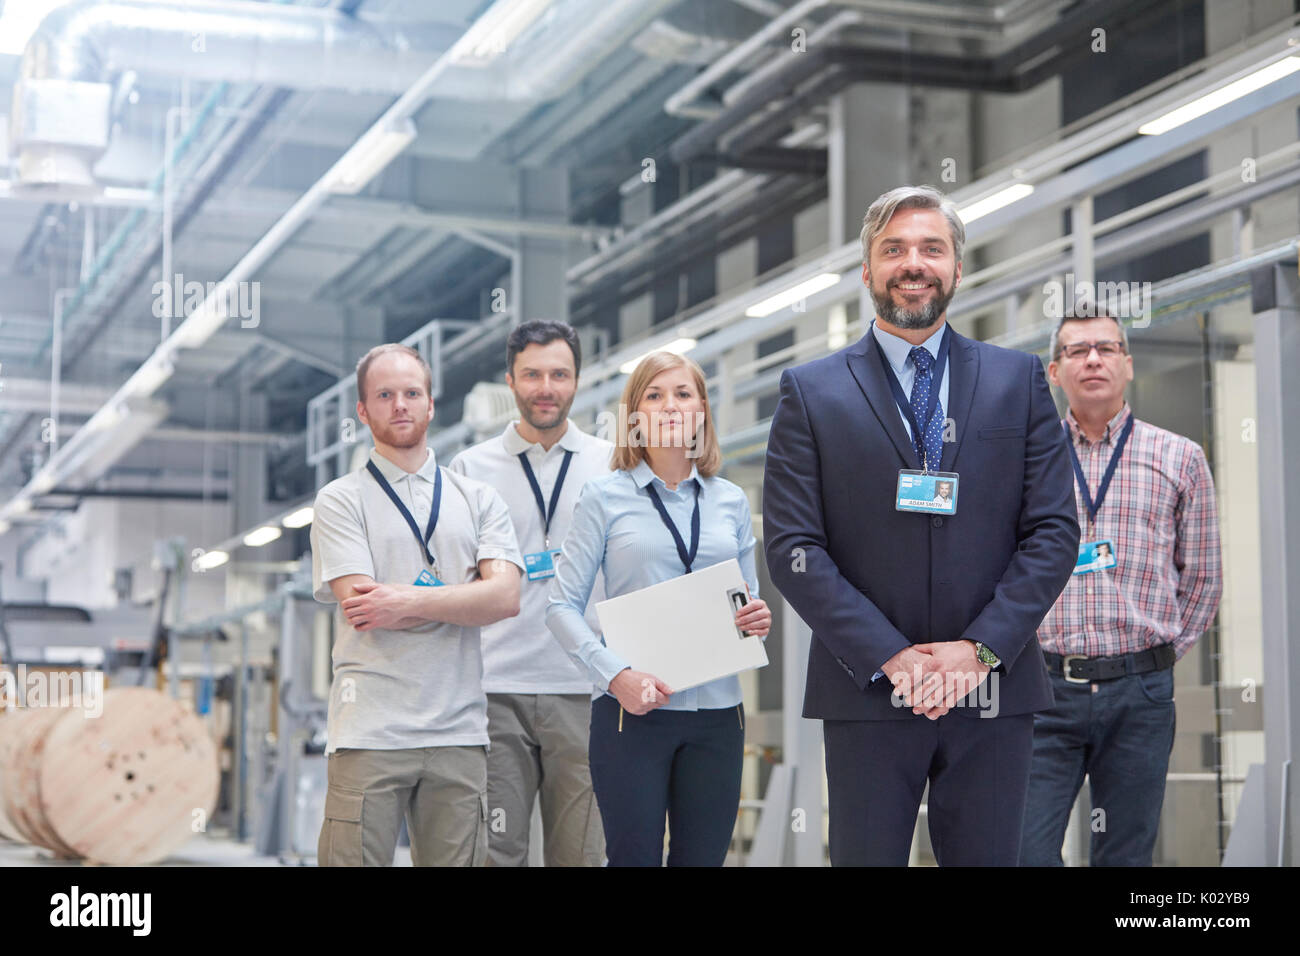 Portrait confident business owner and supervisors in fiber optics factory - Stock Image